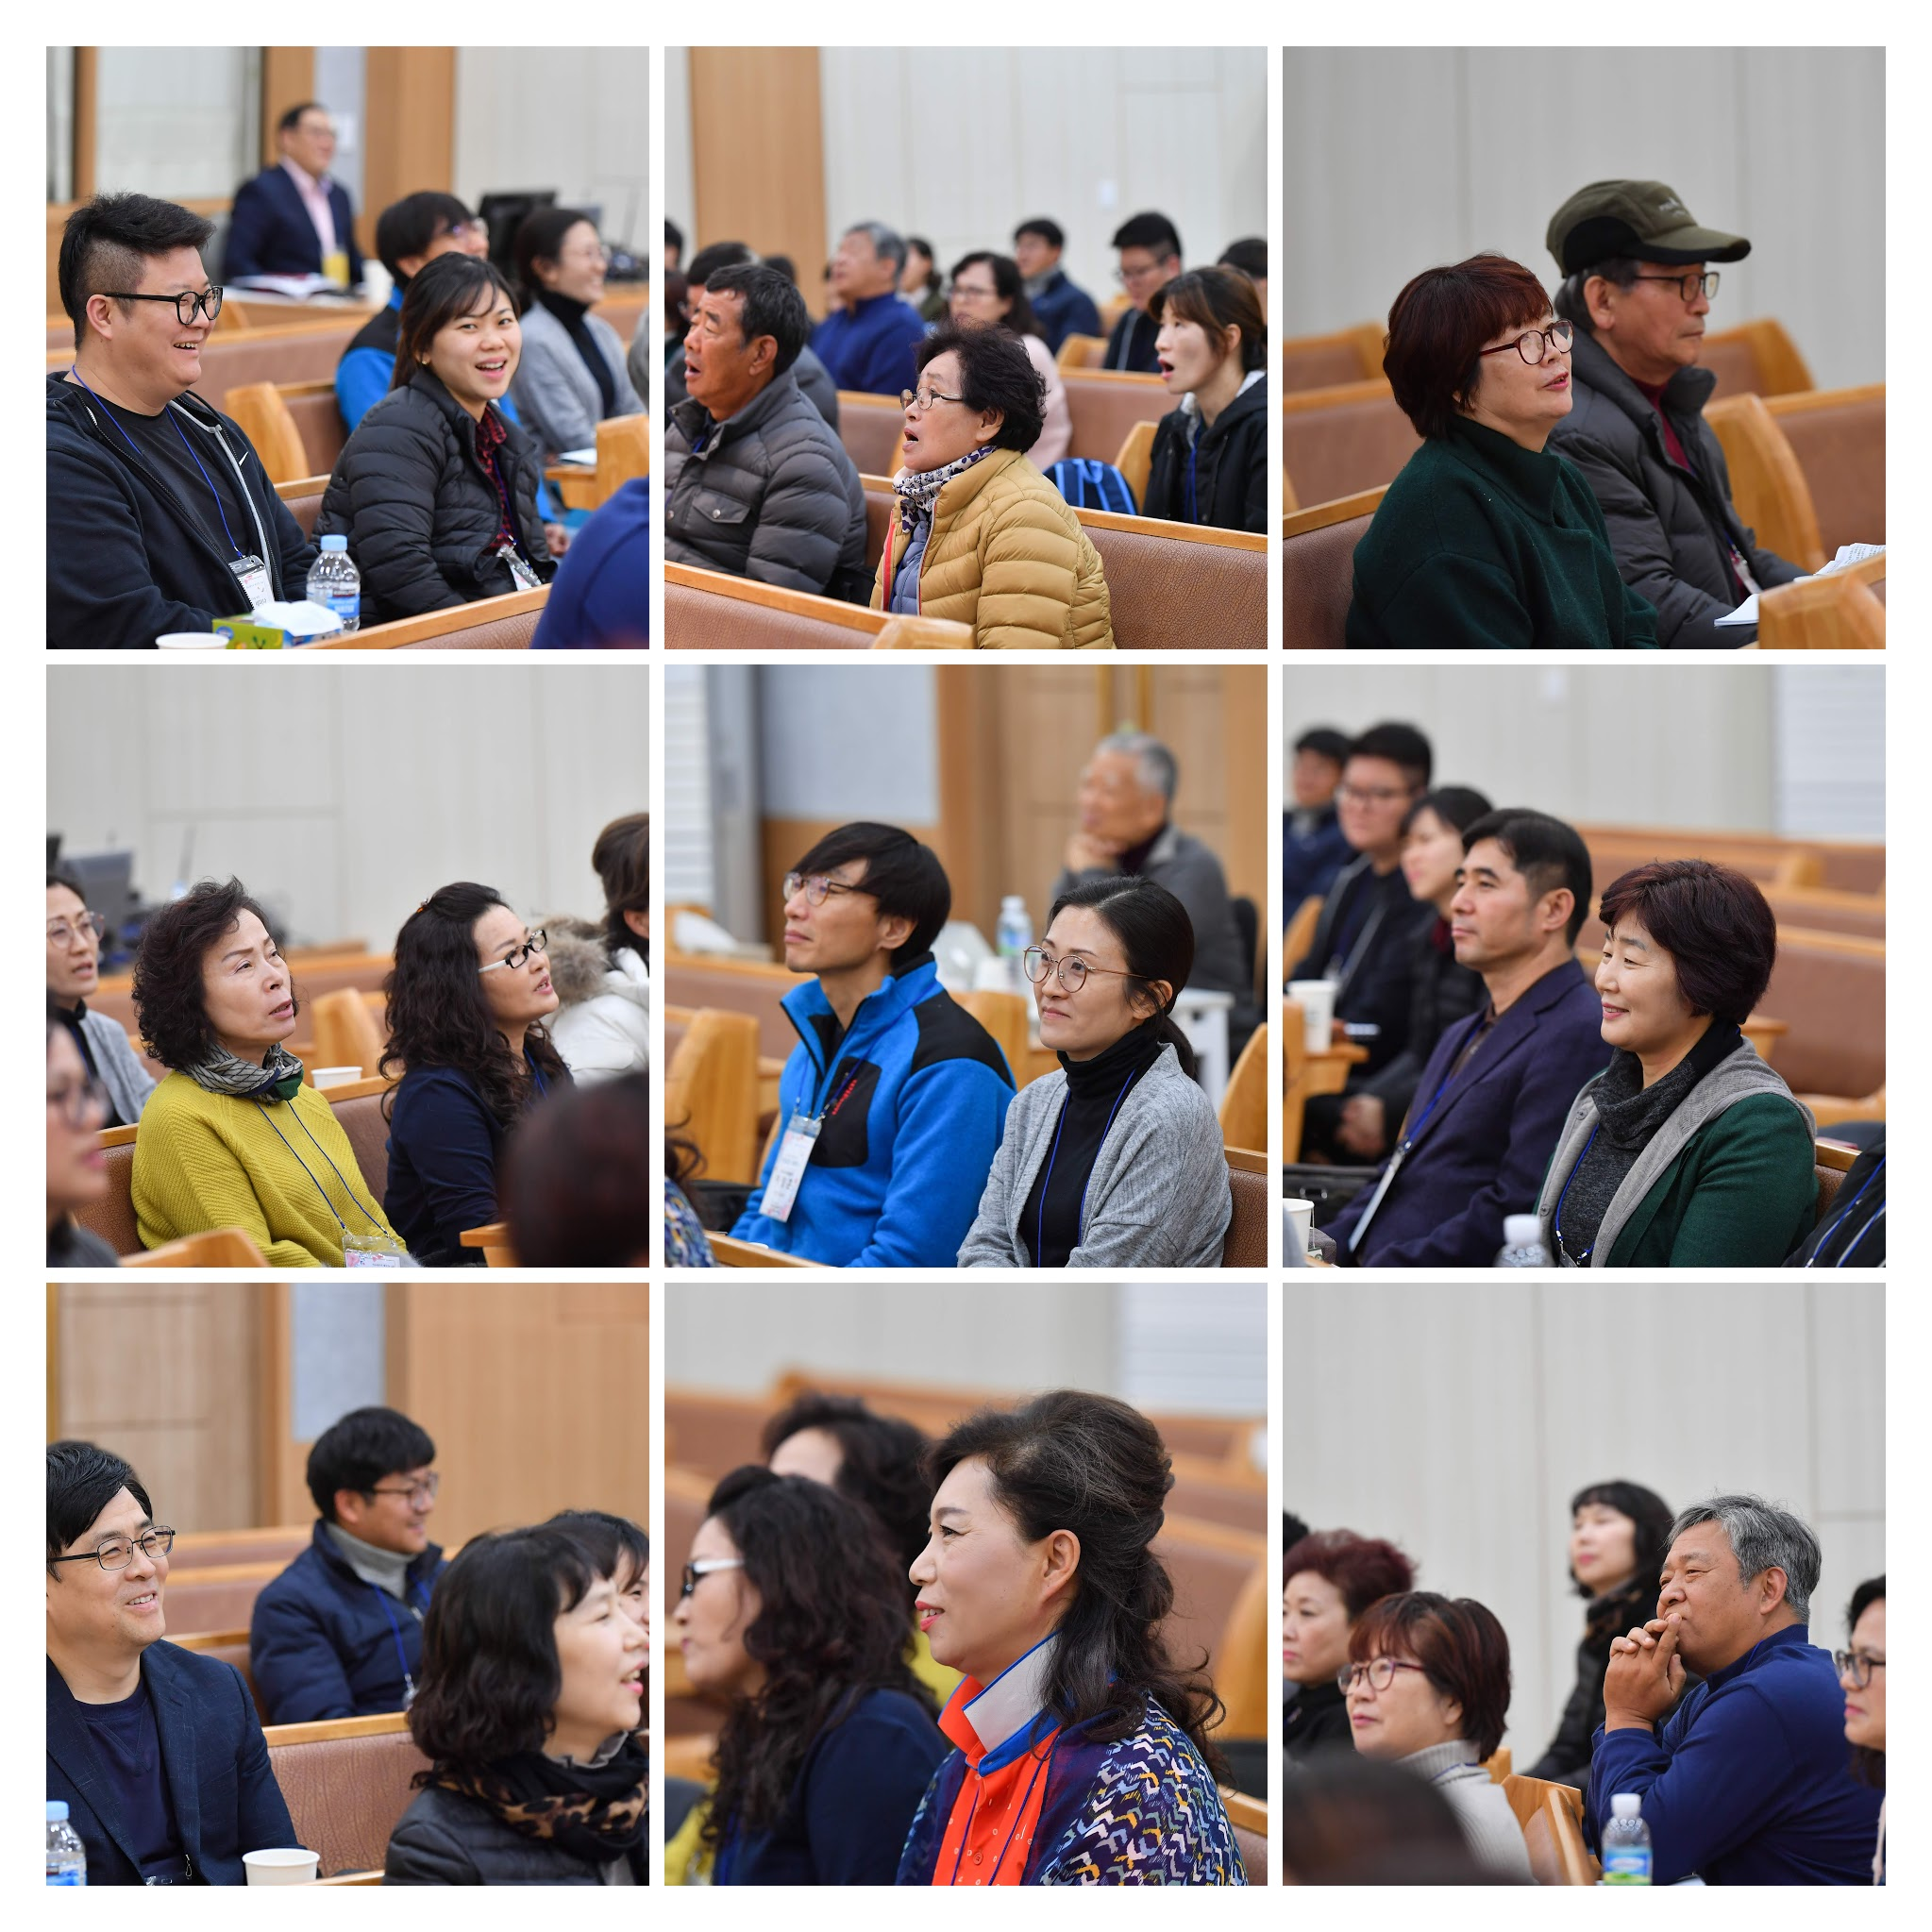 attendees15-COLLAGE.jpg